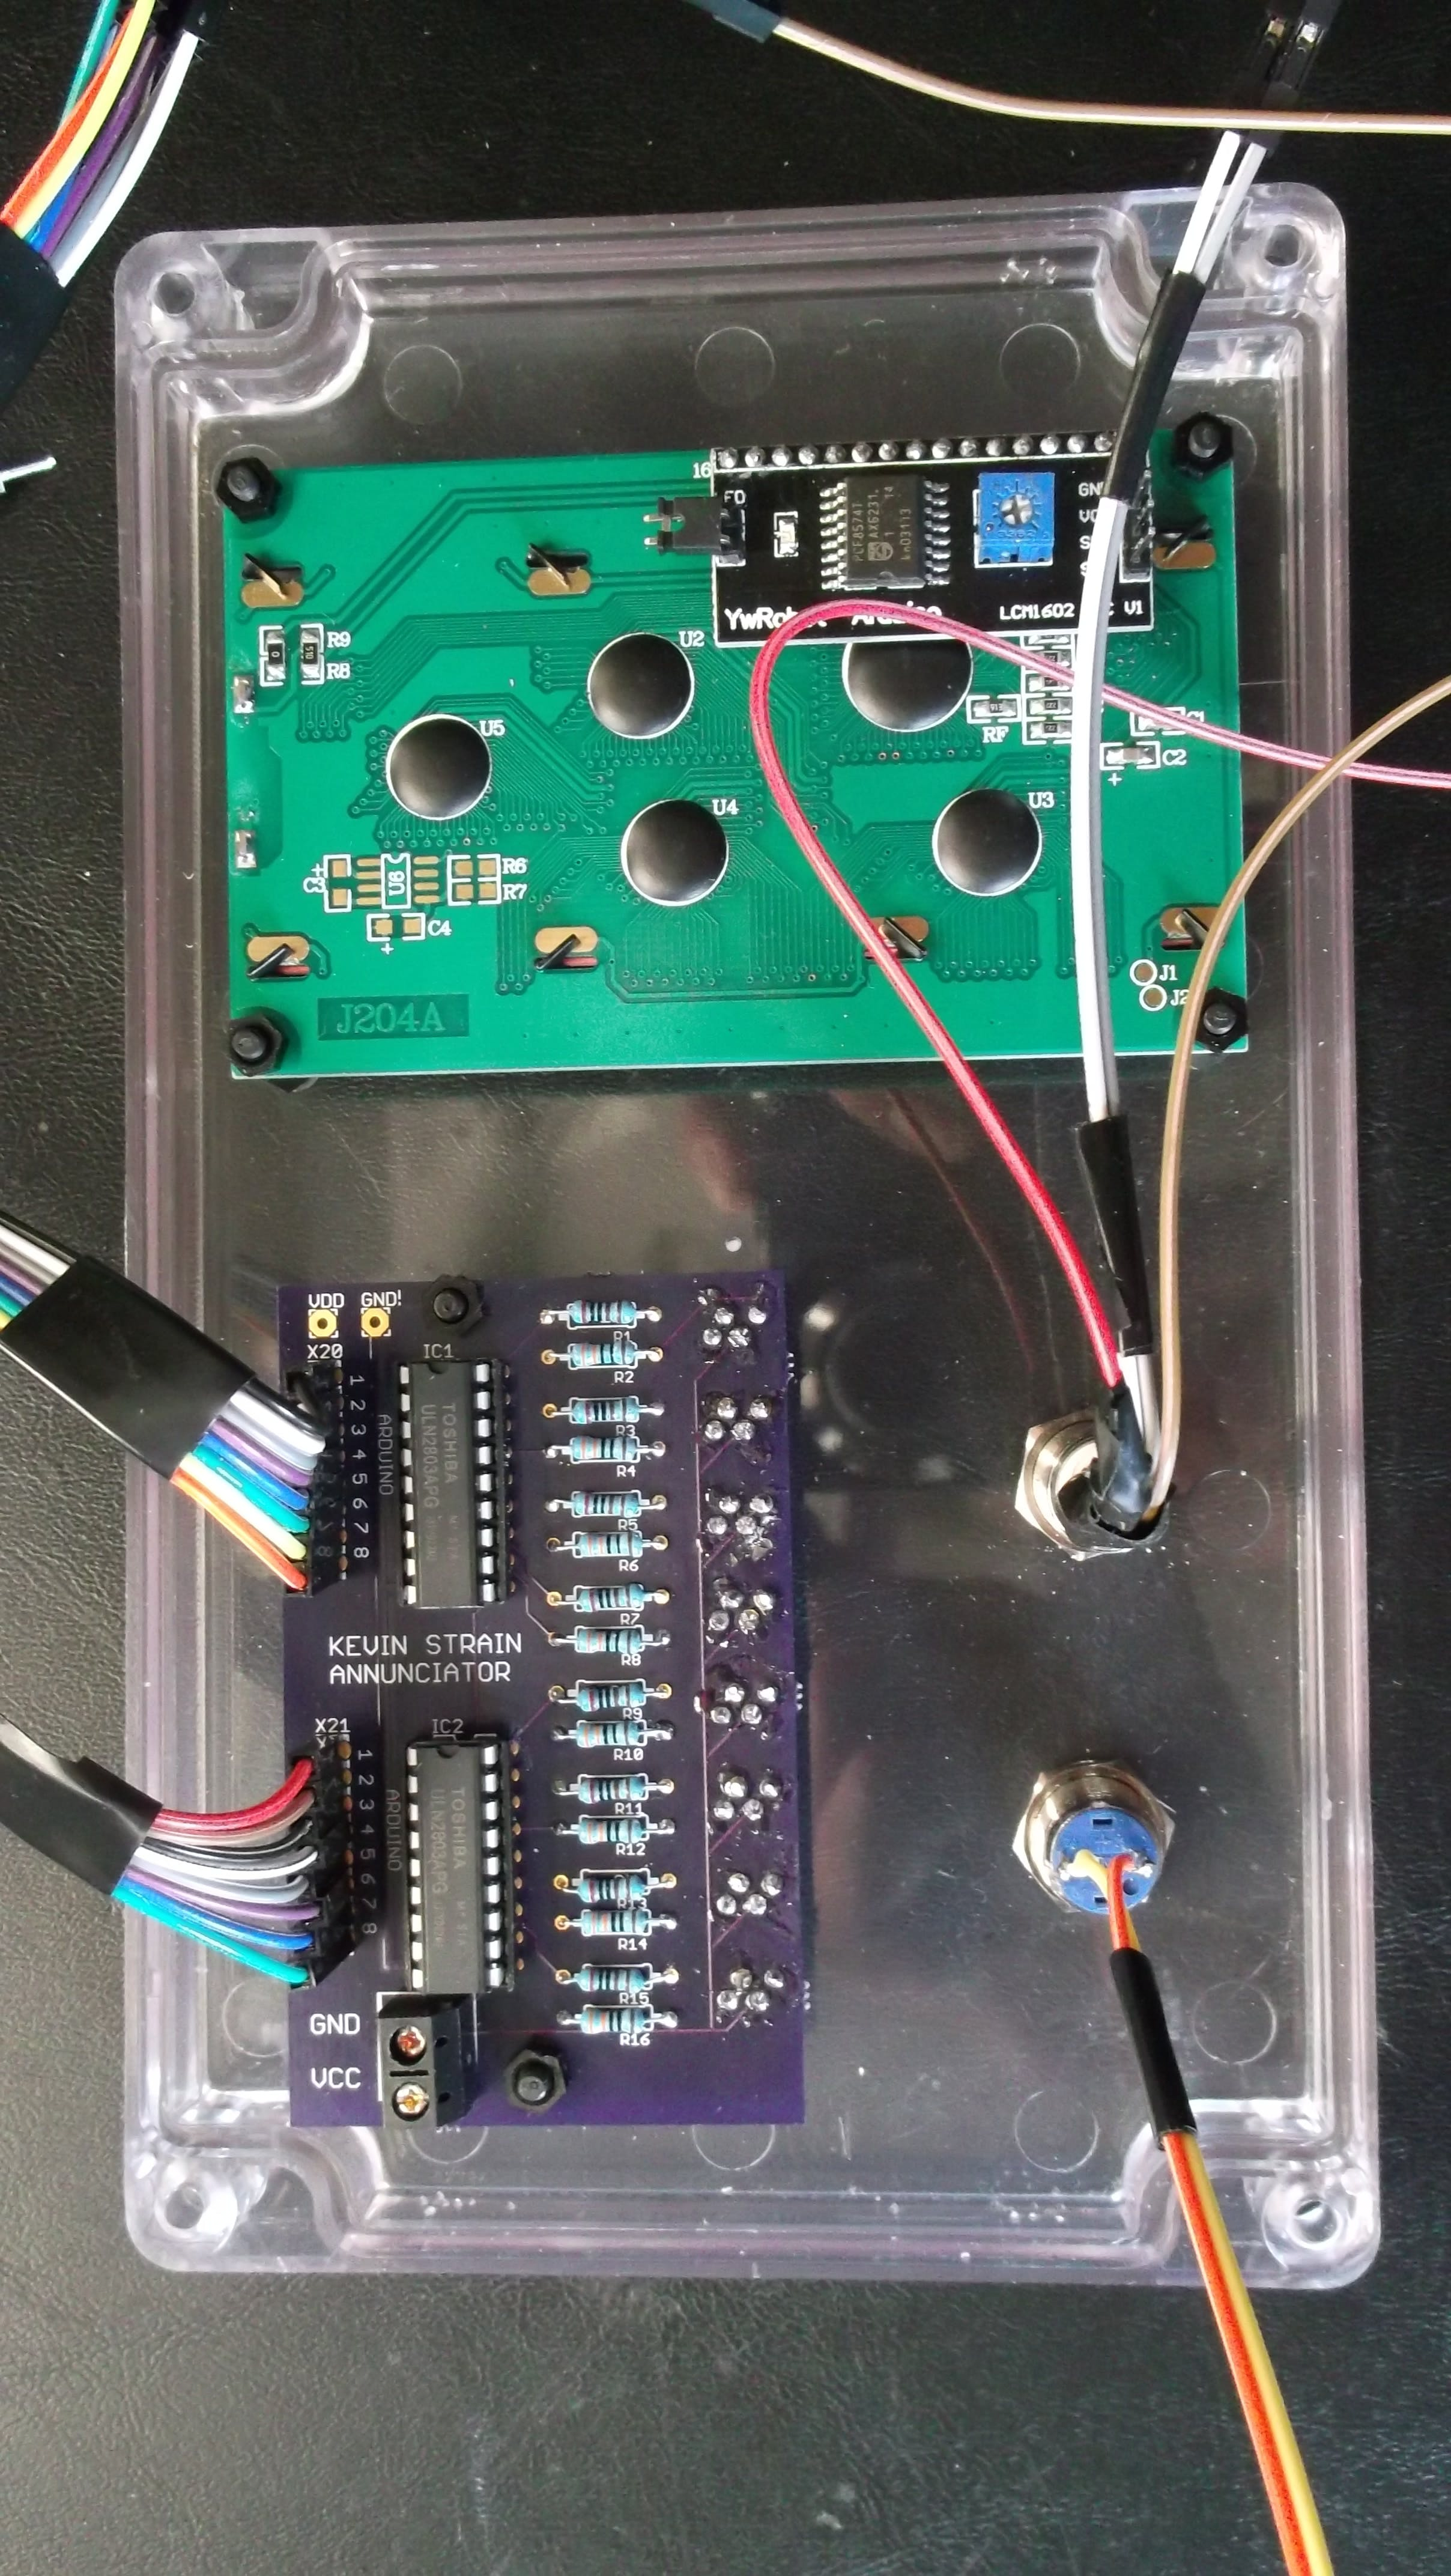 Front cover showing annunciator board, LCD display, reset and message enable pushbutton.